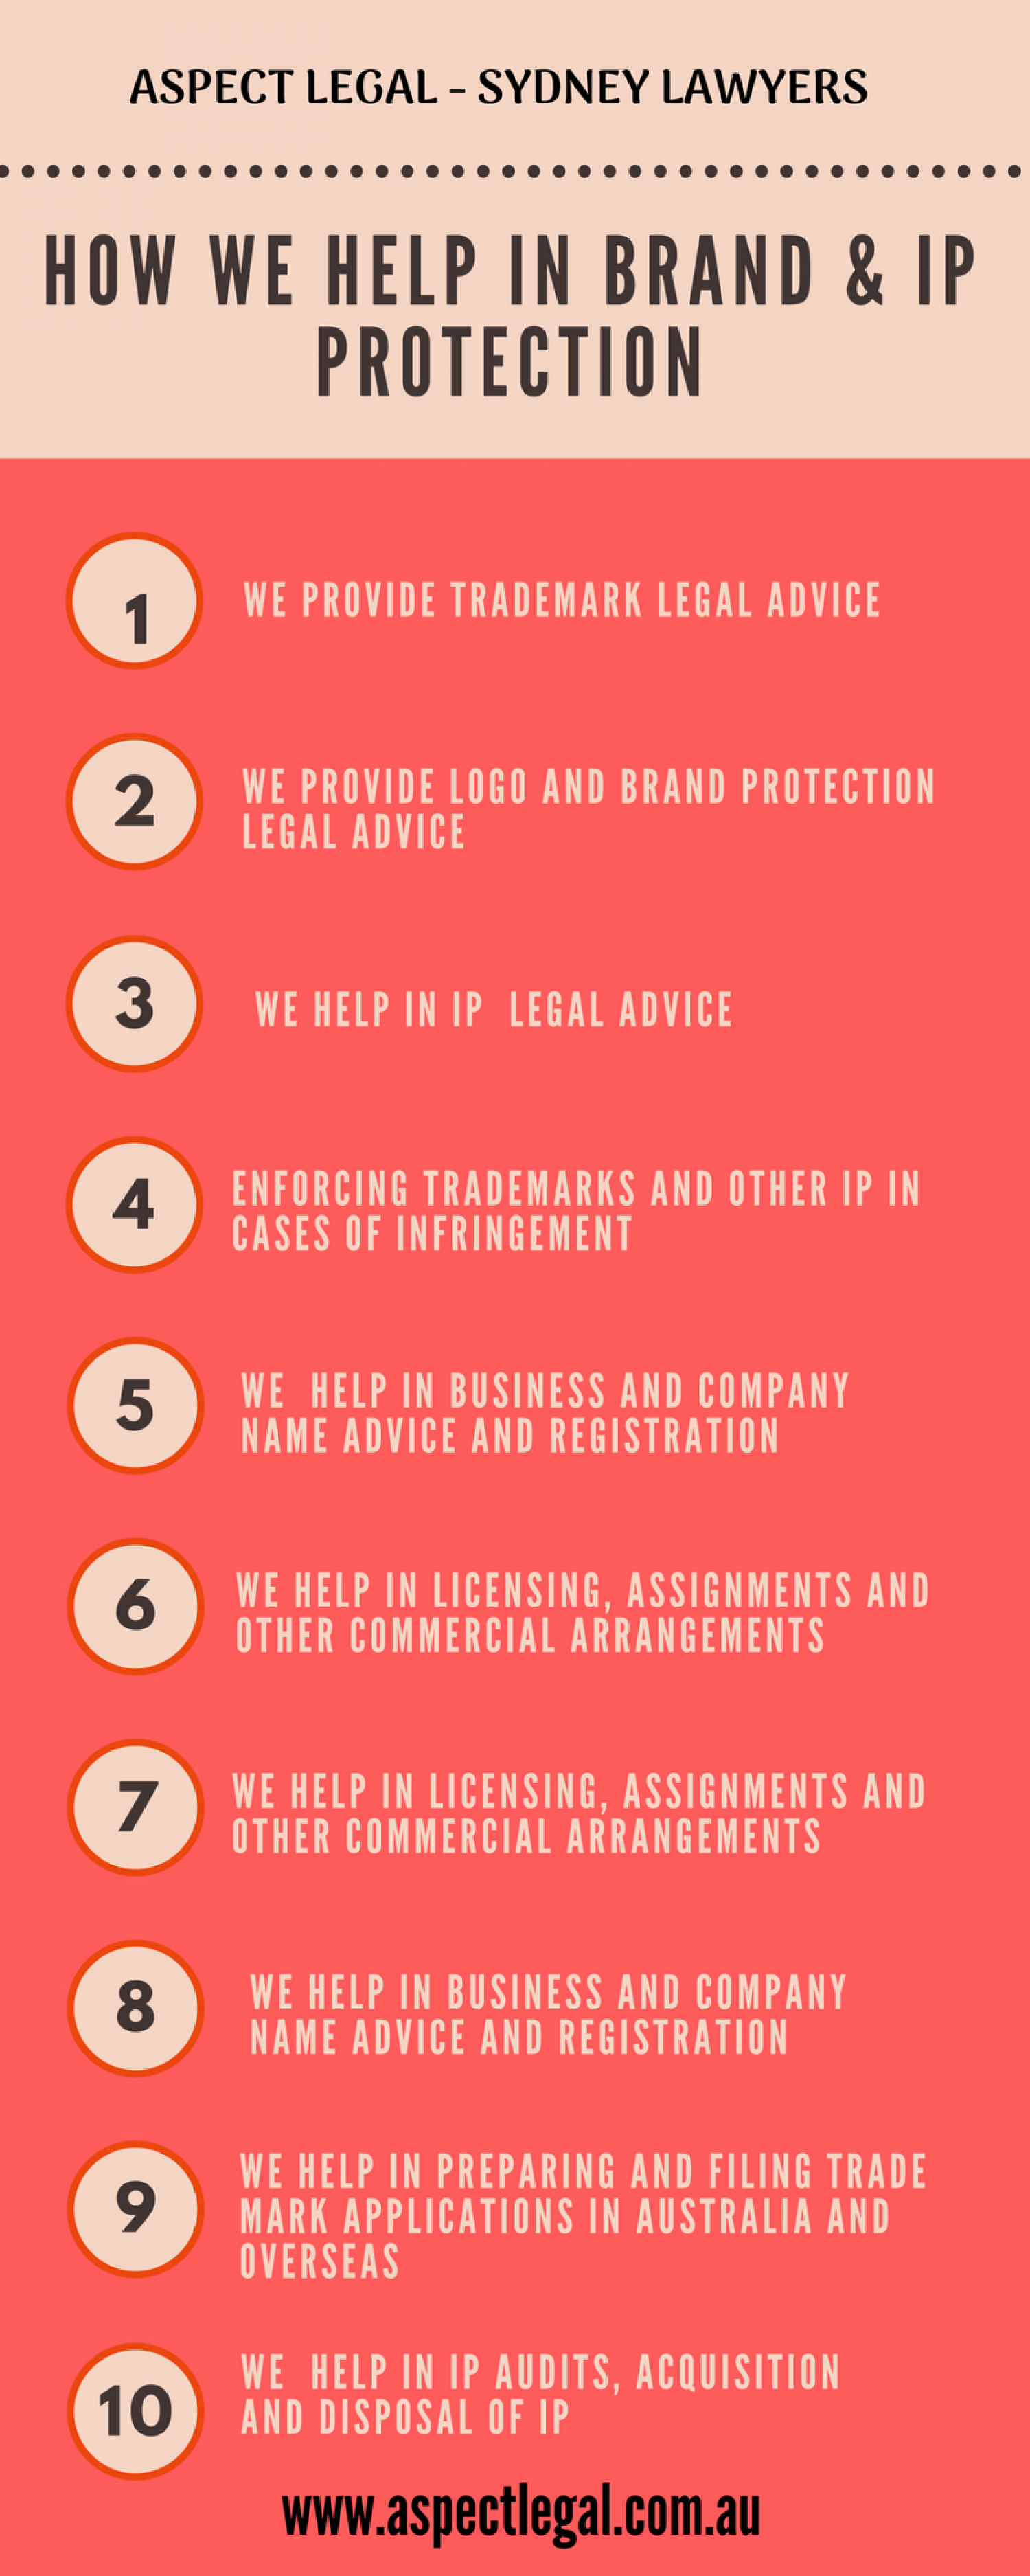 Brand Protection and IP Legal Advice & Services Infographic